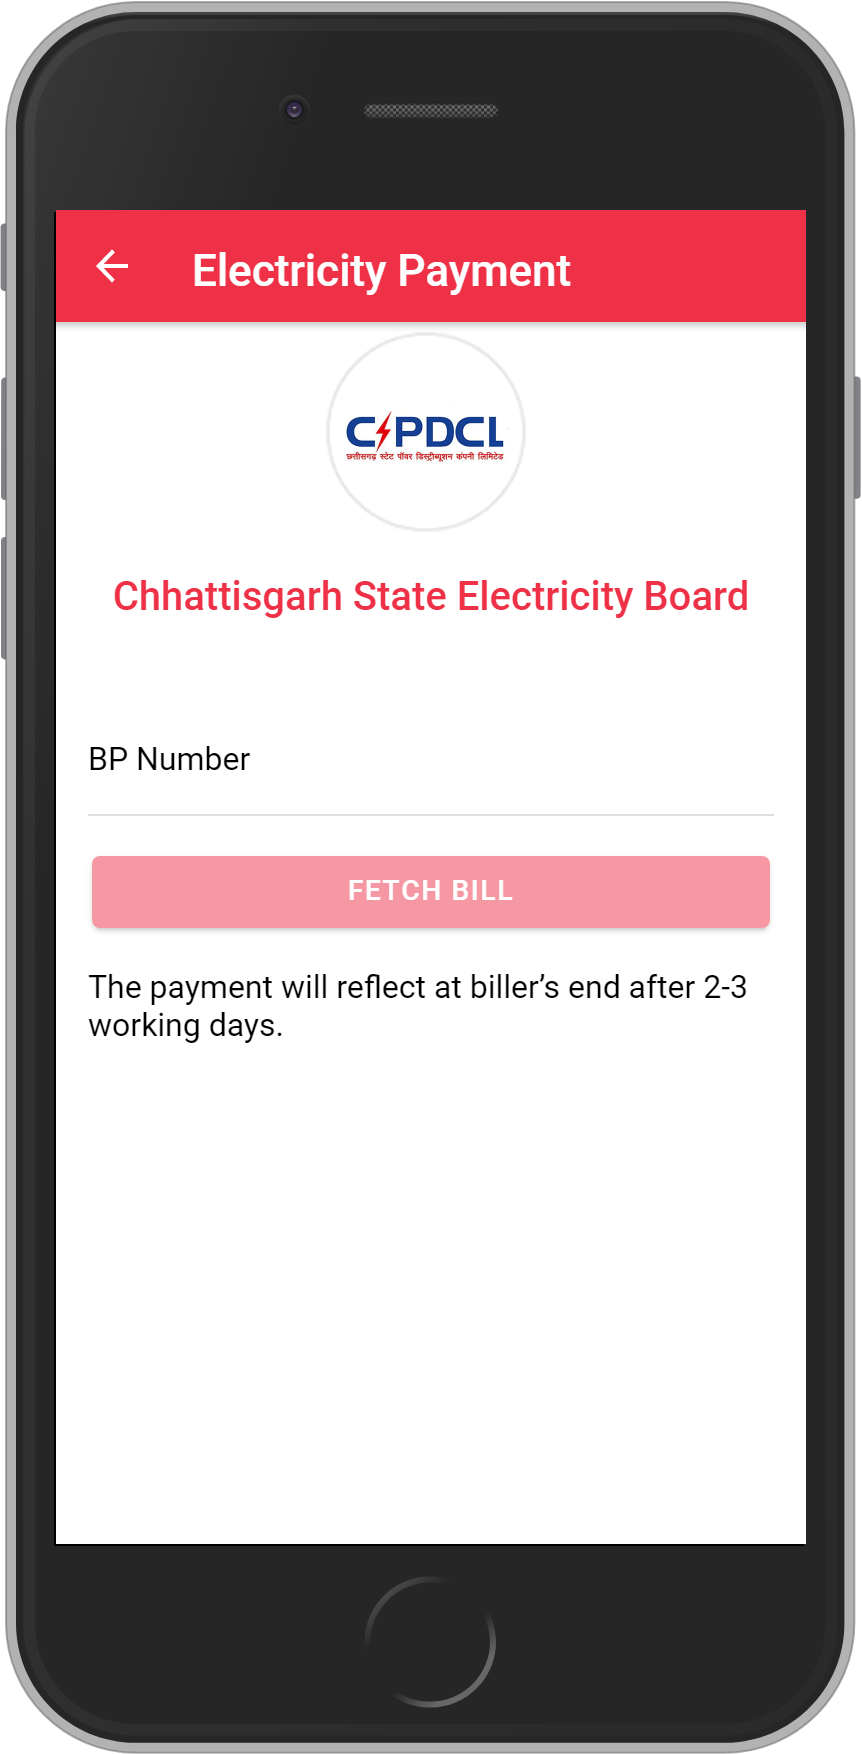 Get UNLIMITED <b>0.1%</b> CASHBACK on Chhattisgarh State Electricity Board Bill Payment.